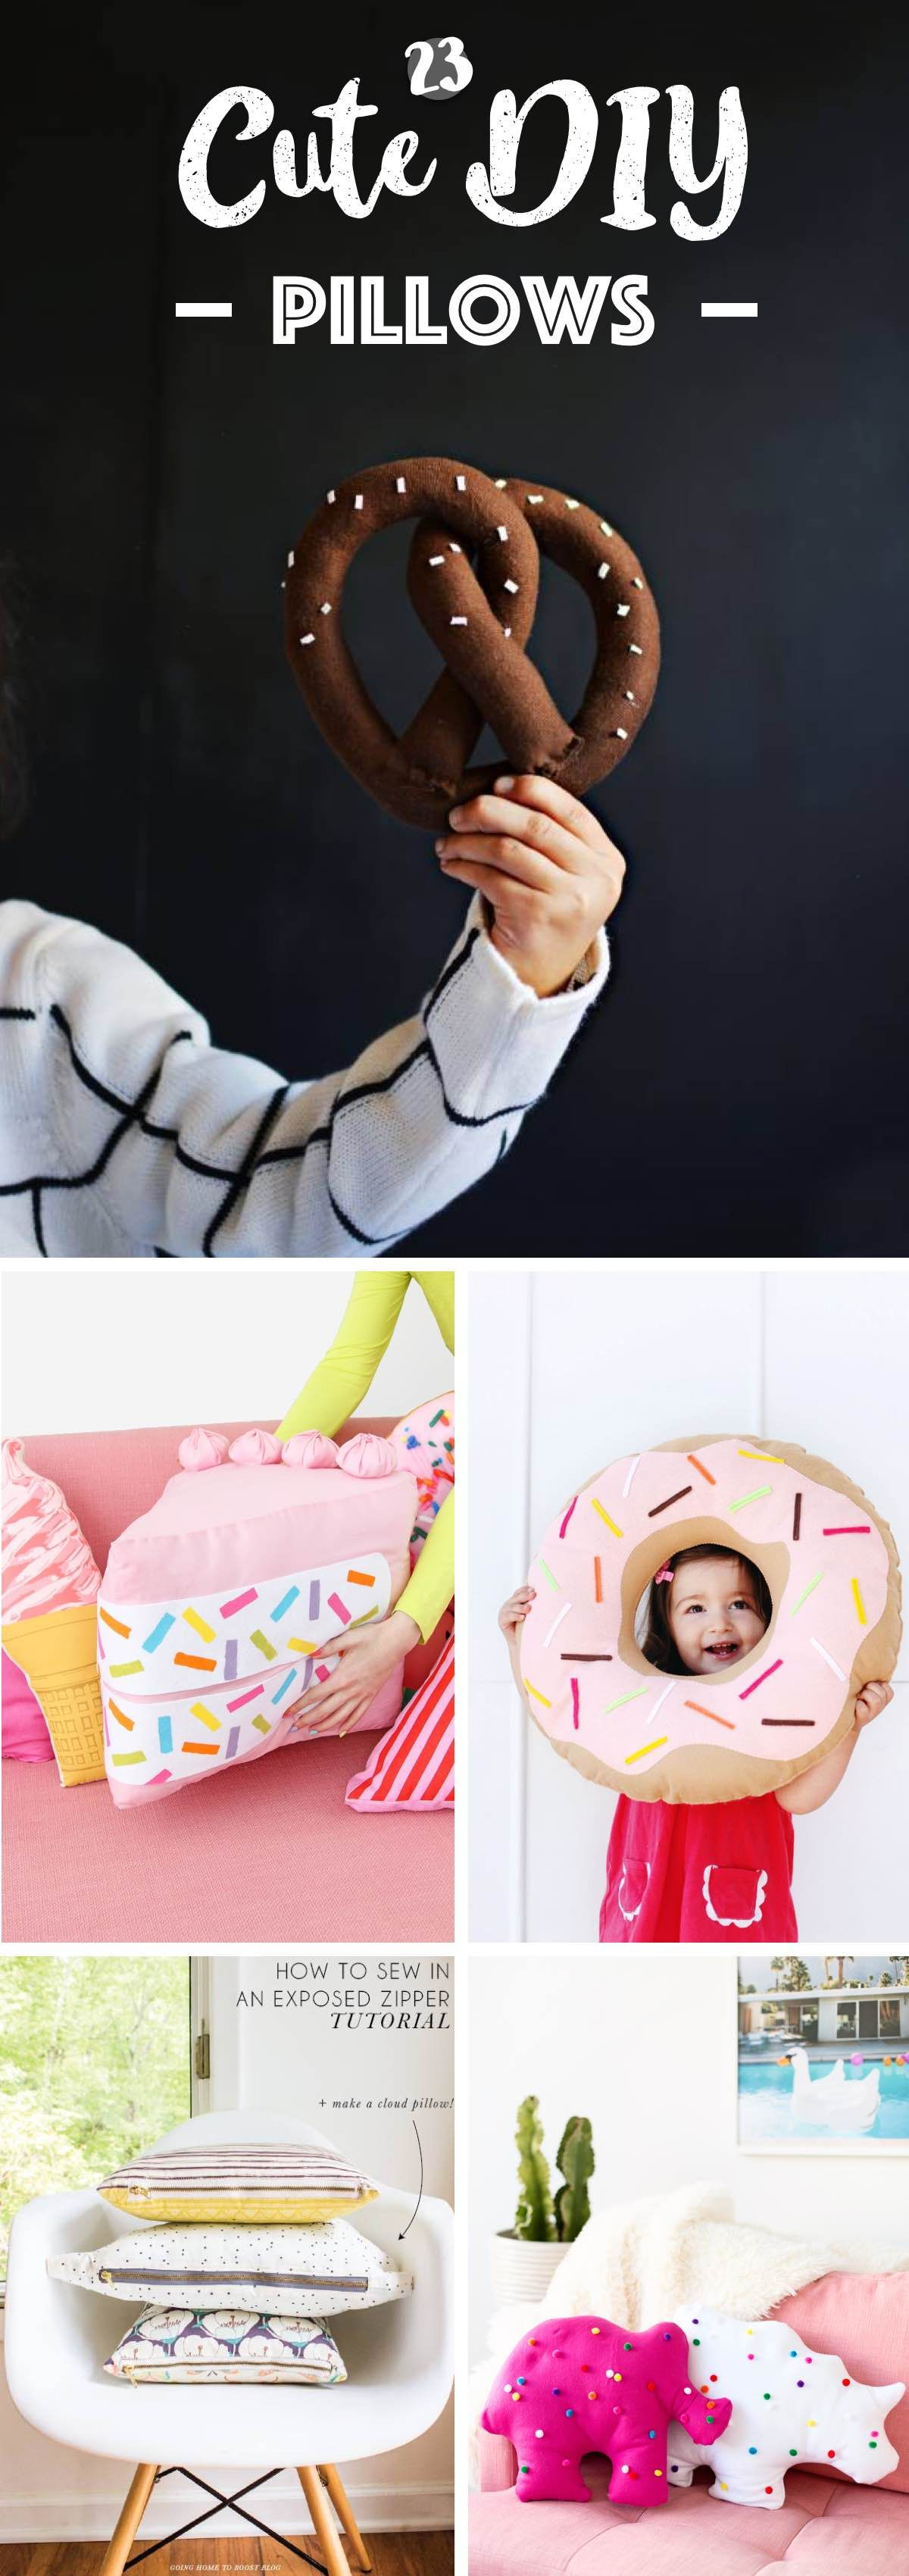 23 More Than Cute DIY Pillows Ranging From Food to Plants for the Themes! -   18 diy pillows food ideas